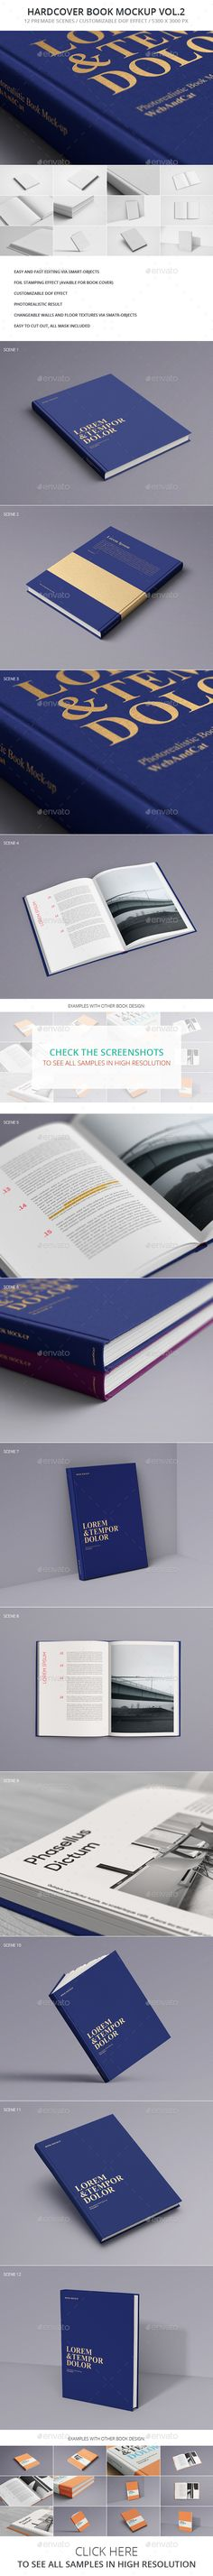 Book Mockup Vol.2 — Photoshop PSD #realistic #foil • Available here → https://graphicriver.net/item/book-mockup-vol2/14383747?ref=pxcr